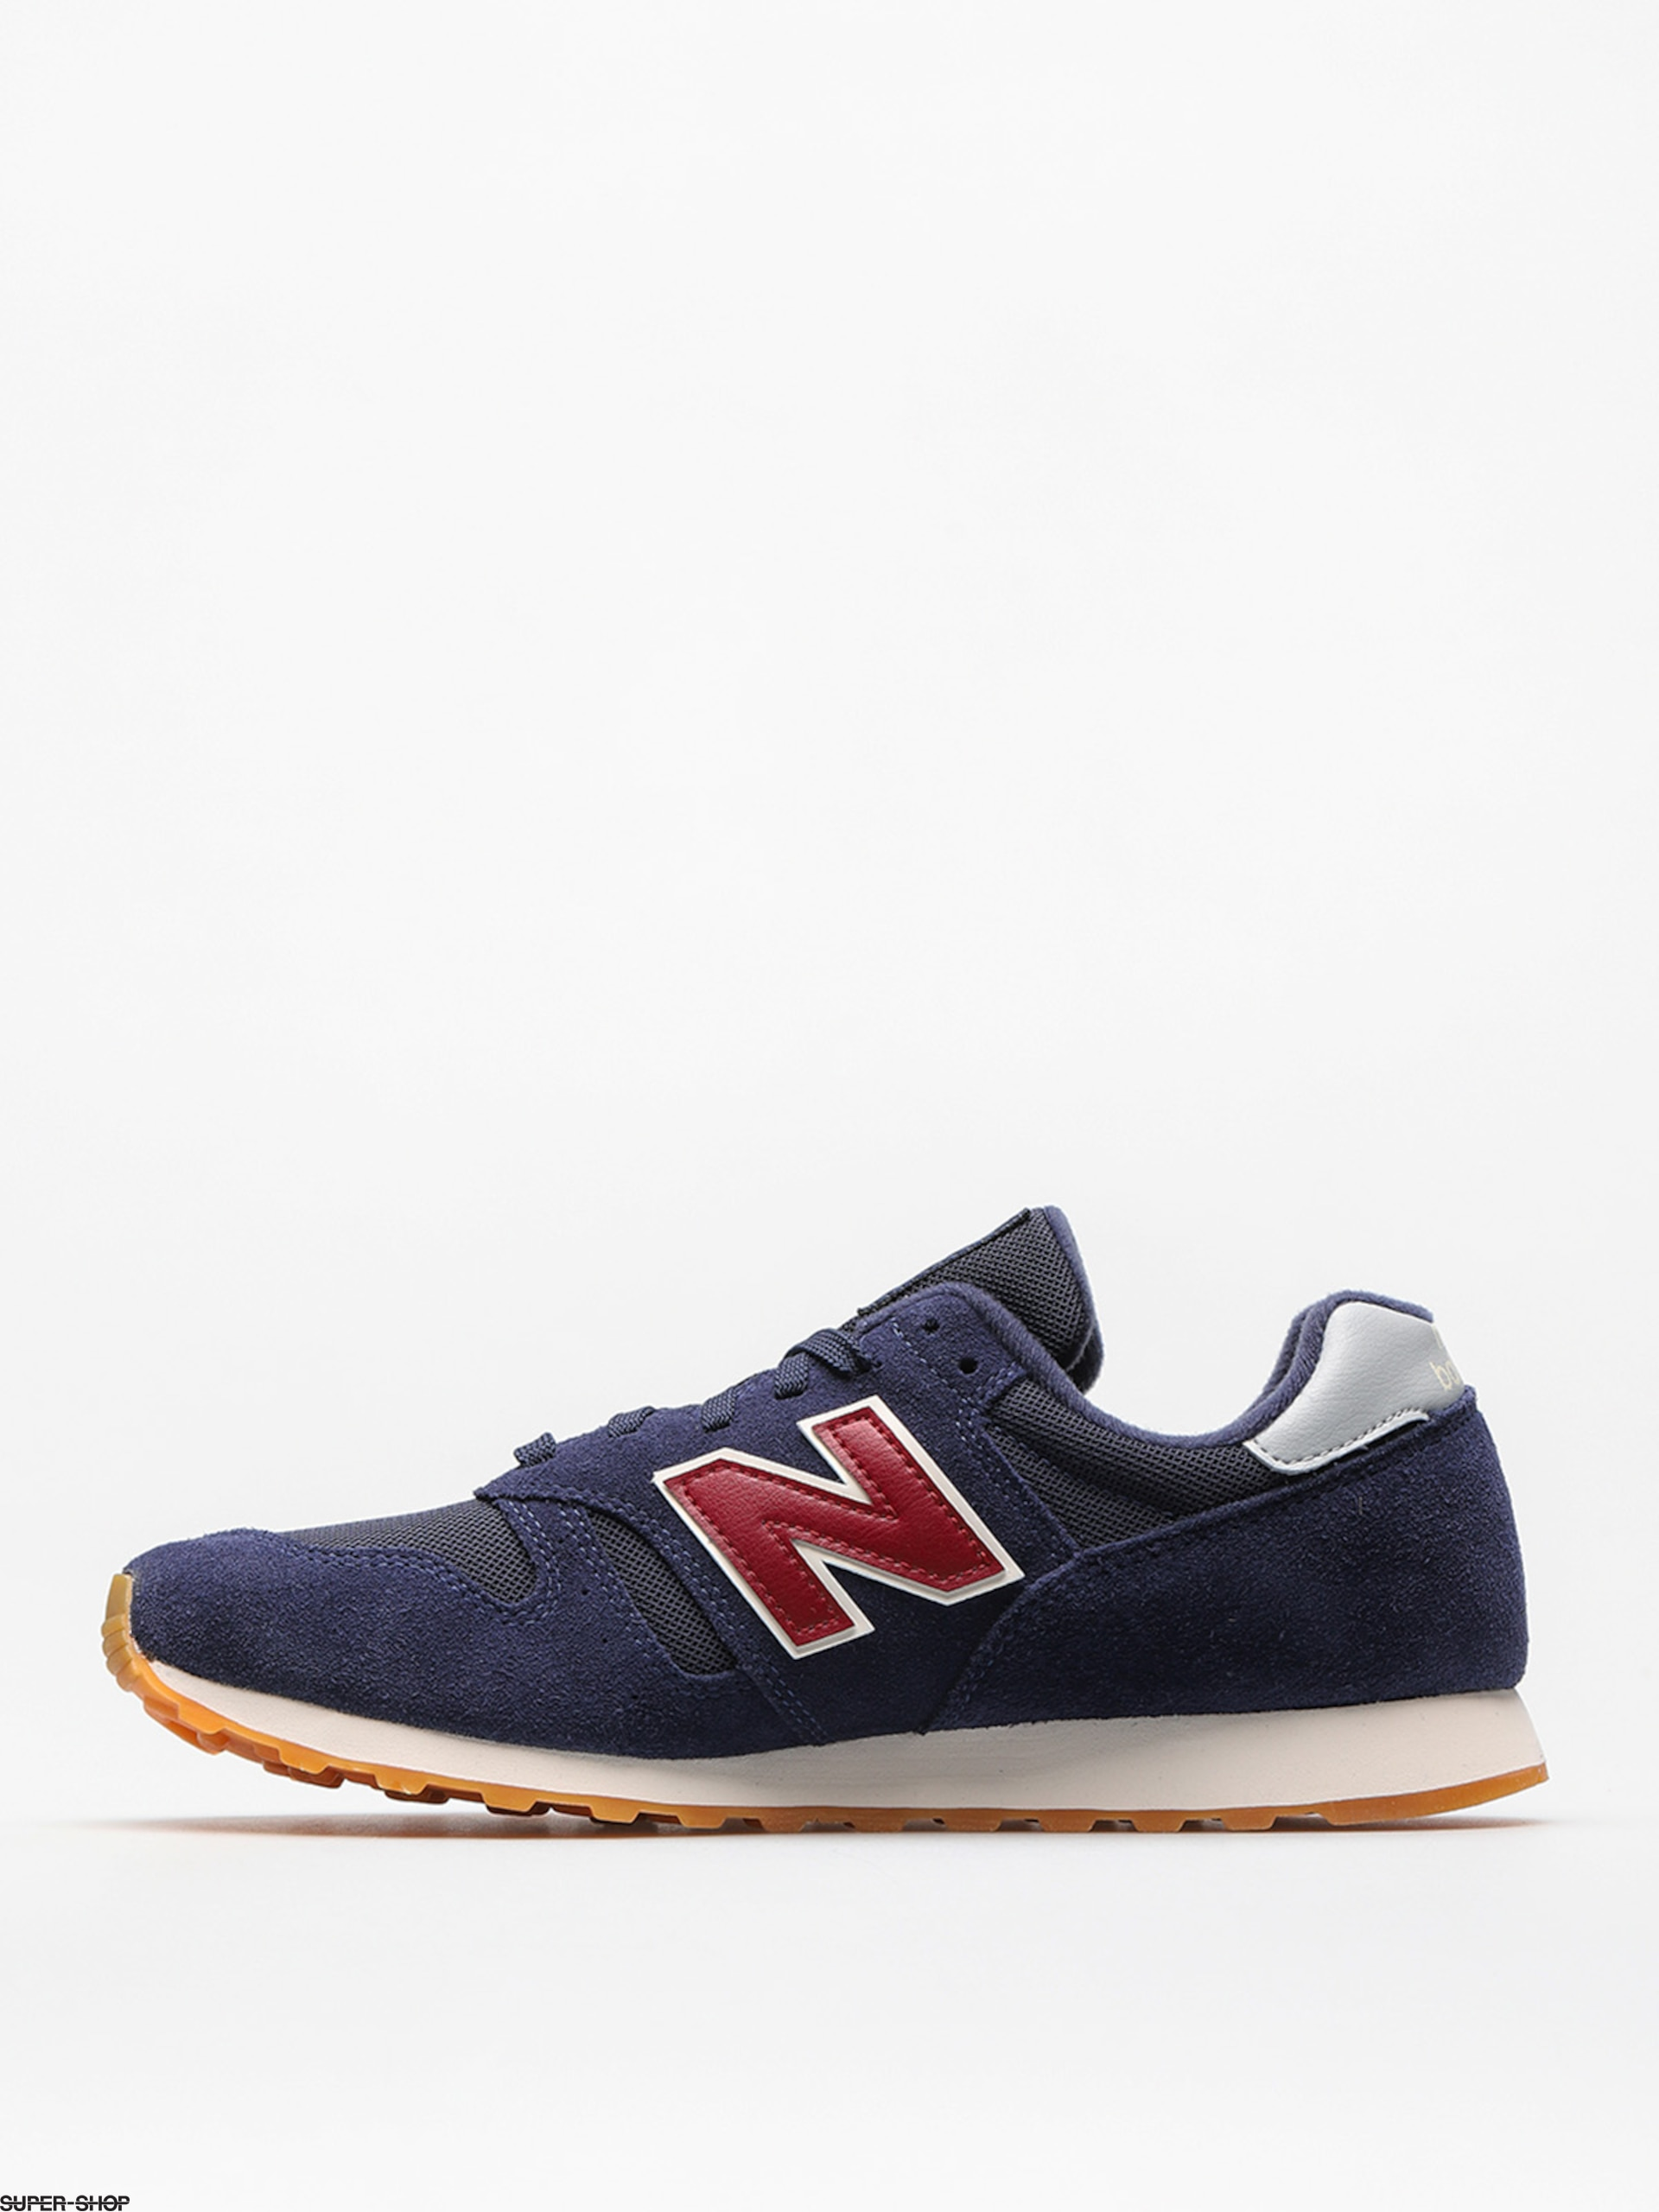 New Balance Shoes 373 (navy/red)